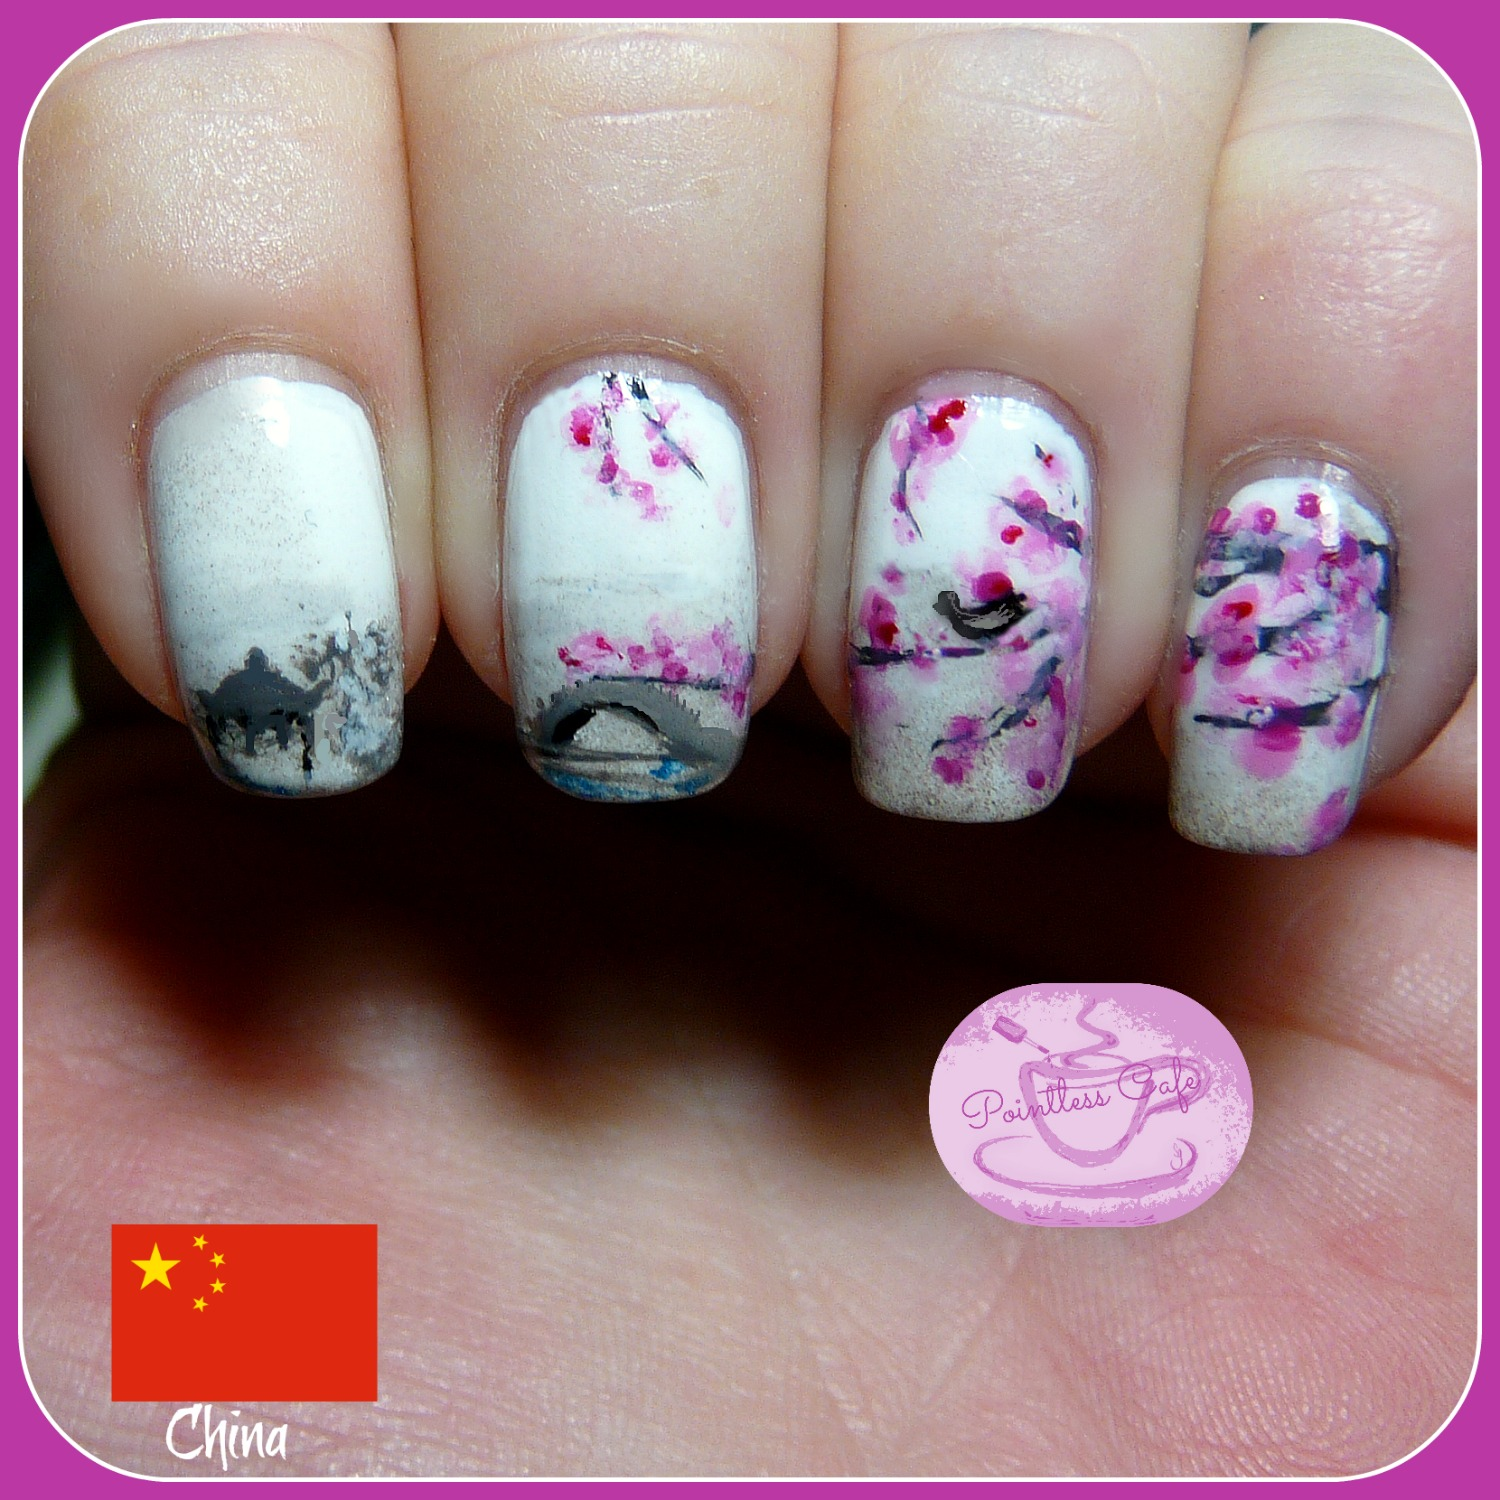 Colorful New Art Nails Port Chester Ny Image Collection - Nail Art ...